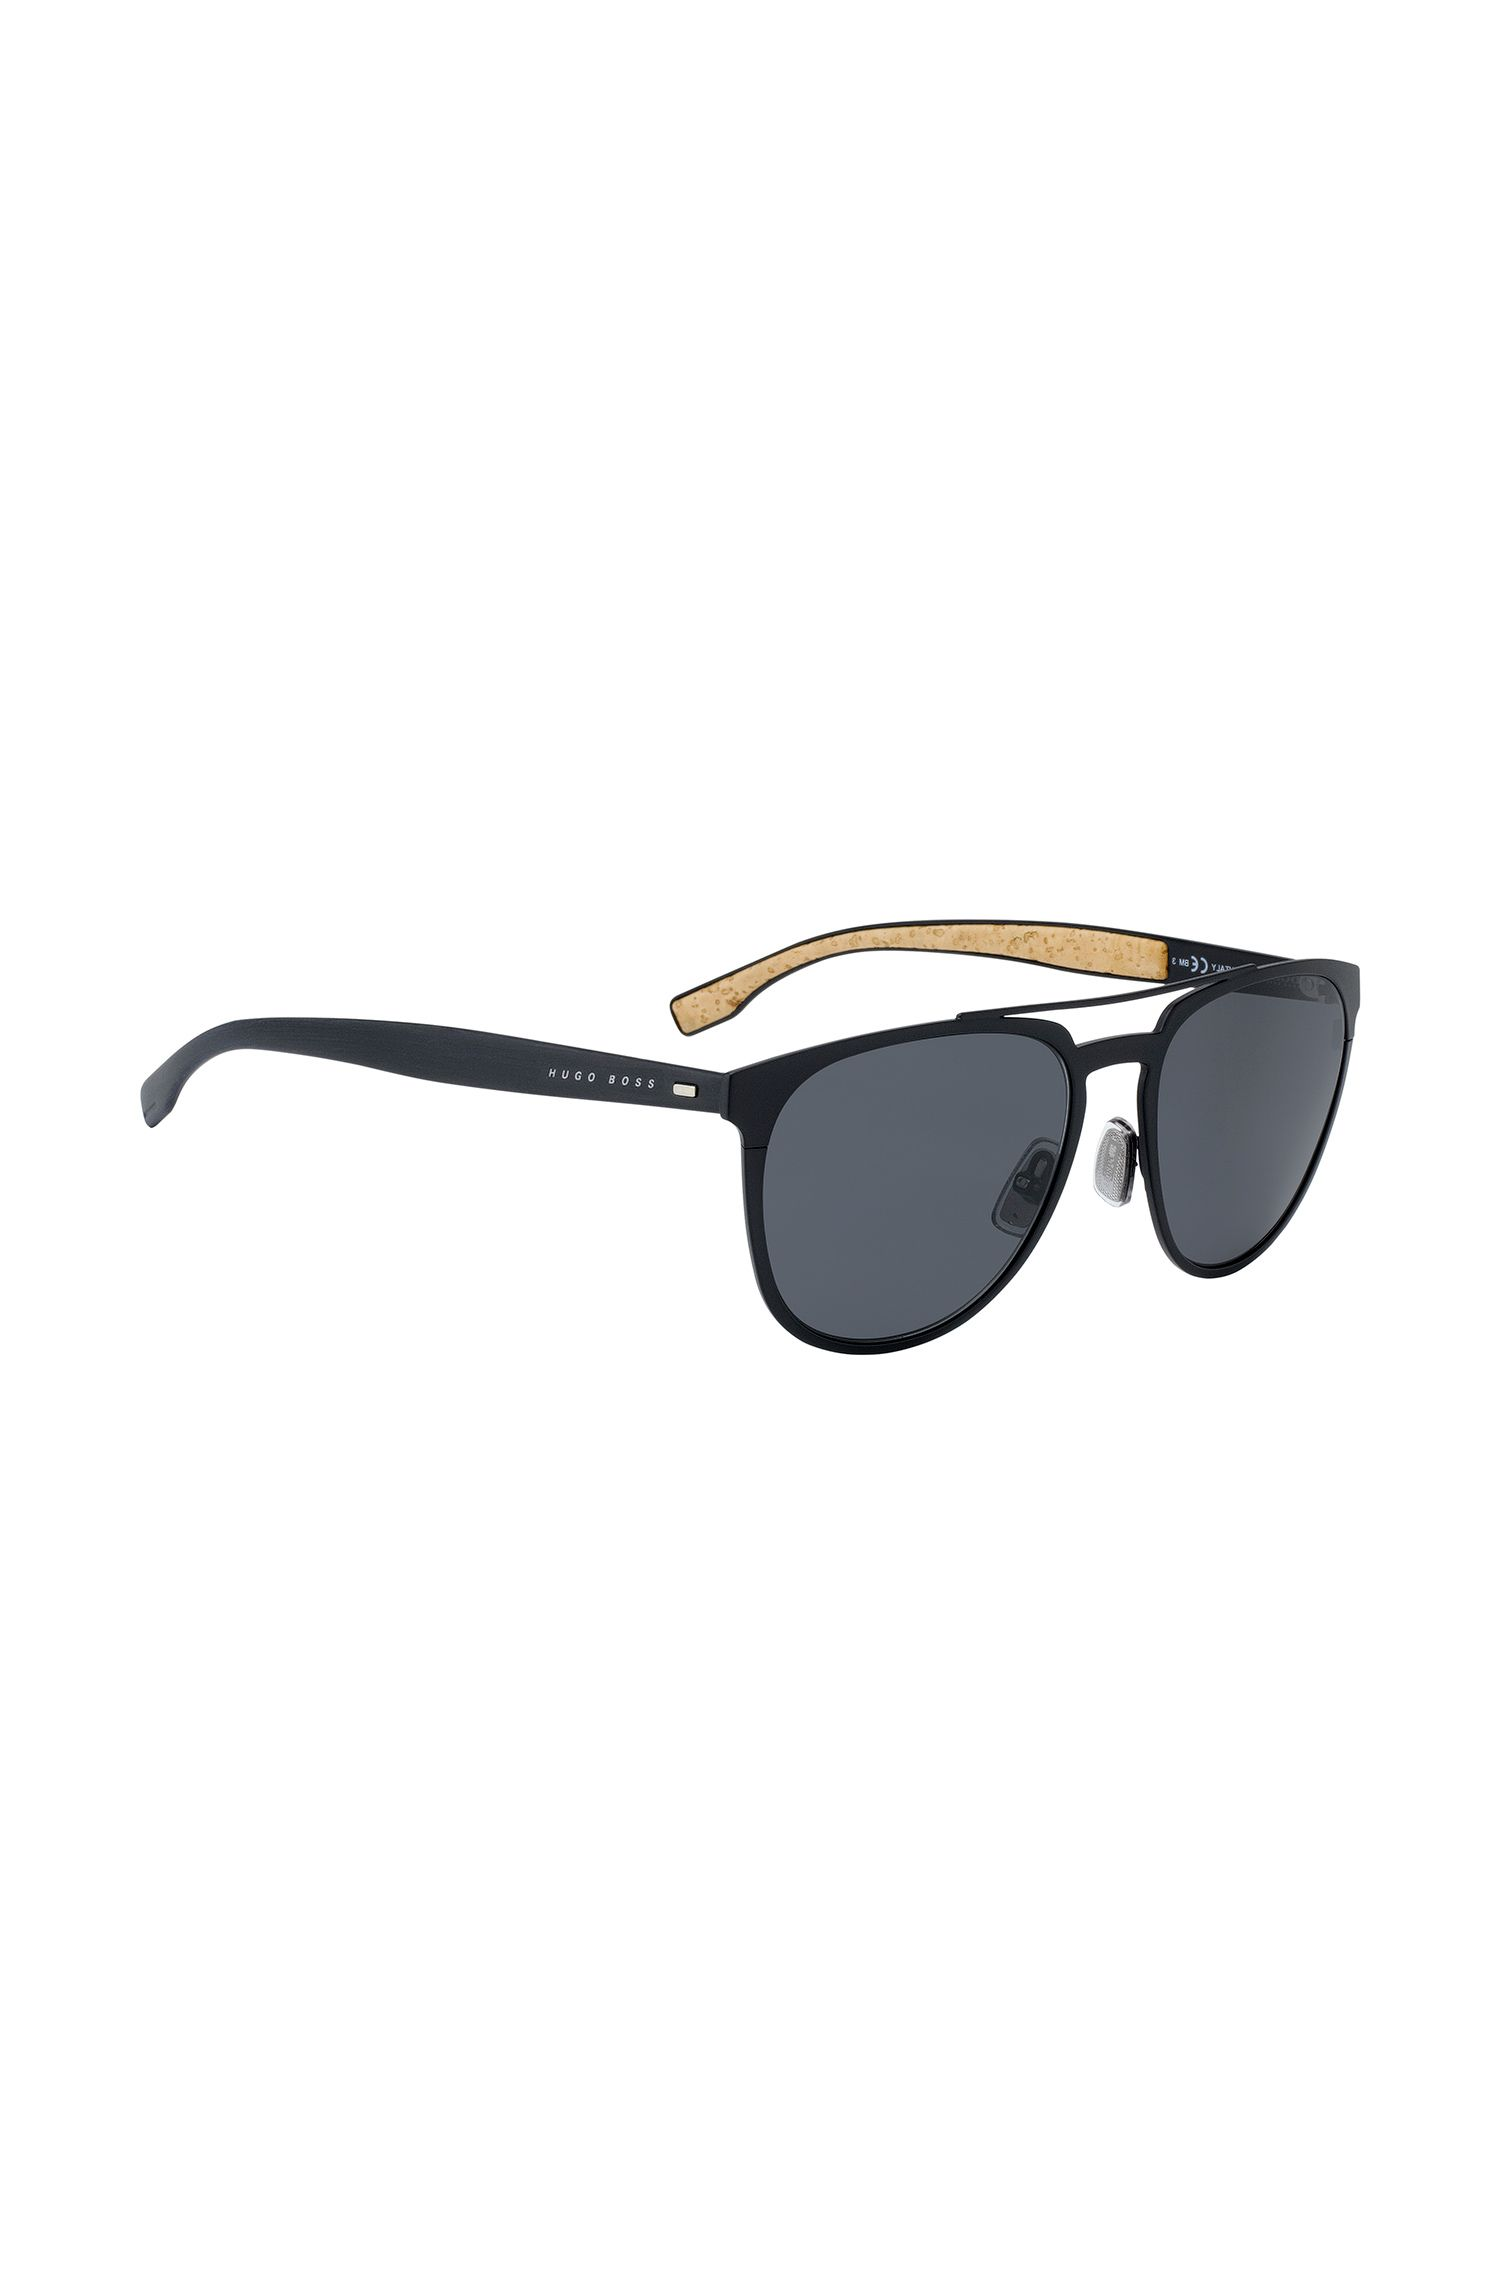 Dark Grey Metal Round Sunglasses | BOSS 0882S, Assorted-Pre-Pack